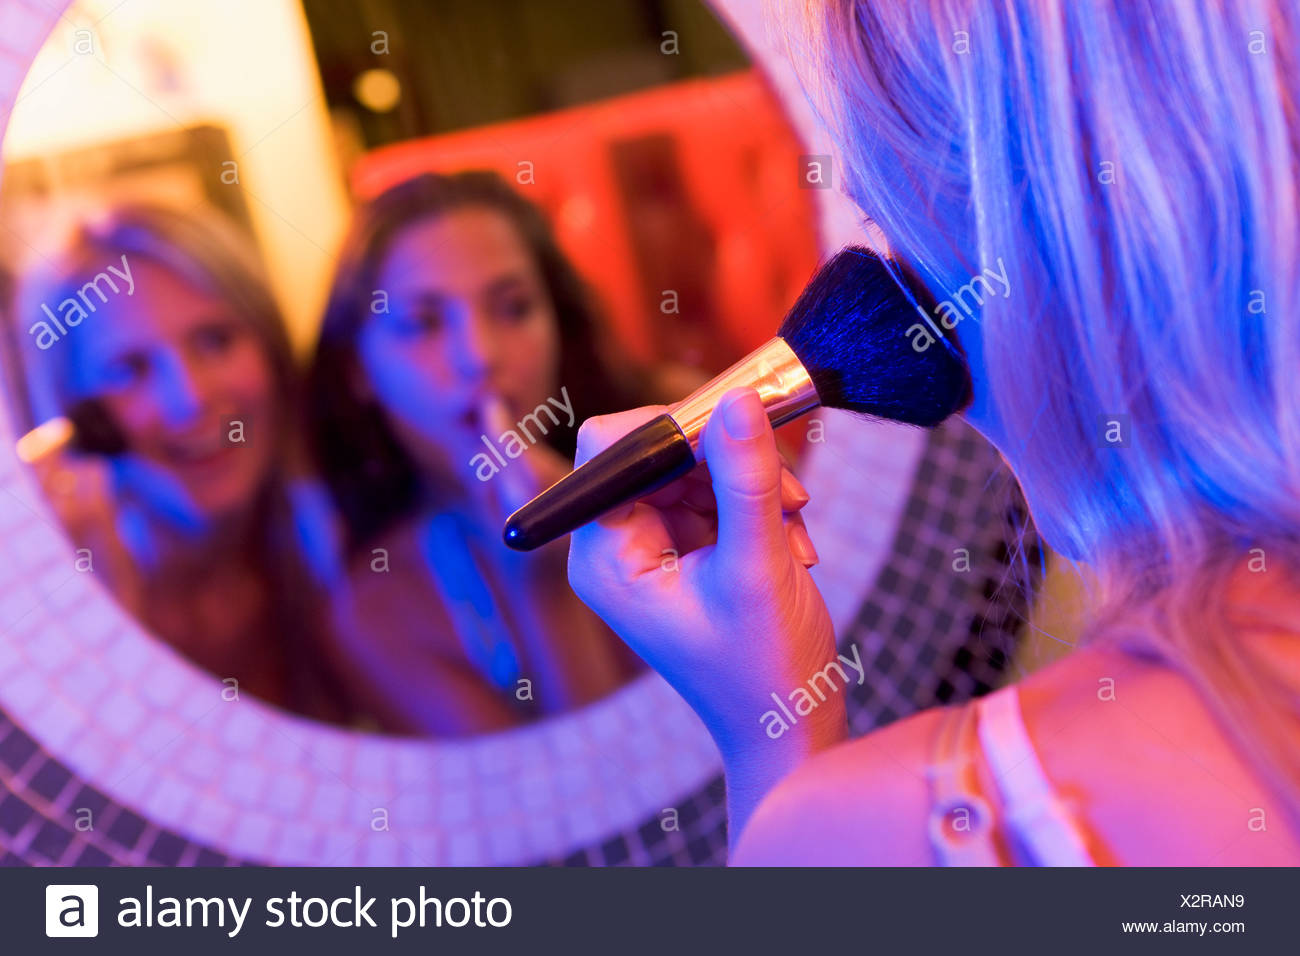 Two young women applying makeup in a mirror - Stock Image